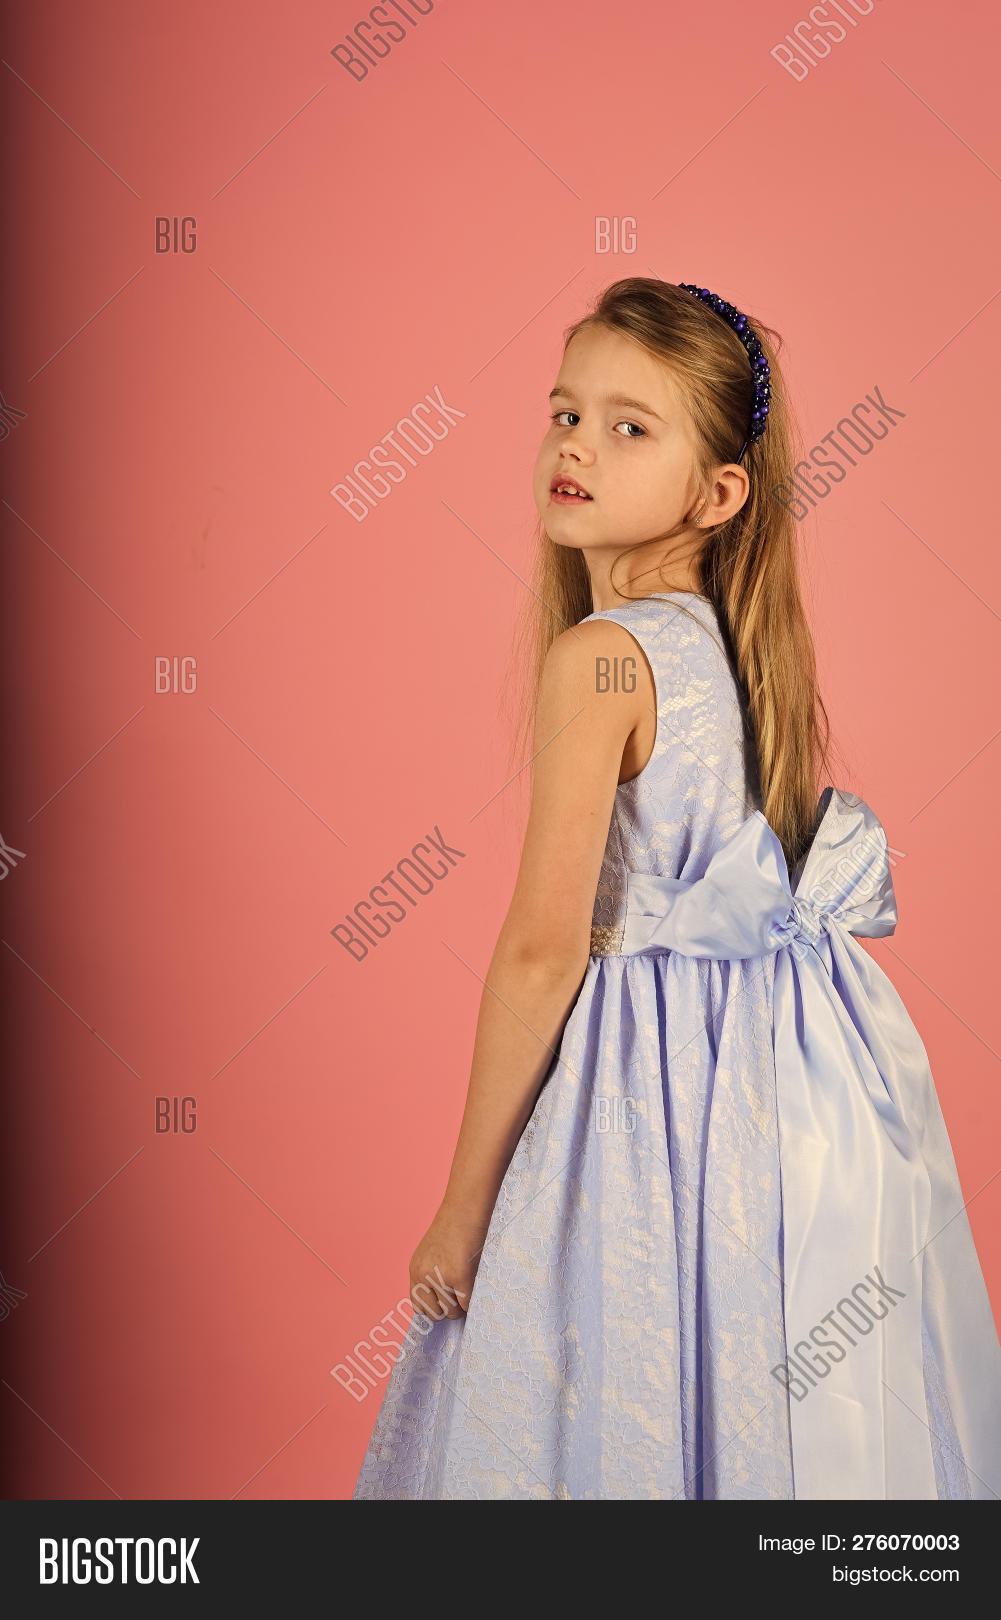 6bb4786455aa Little girl in fashionable dress, prom. Fashion model on pink background,  beauty. Fashion and beauty, little princess. Look, hairdresser, makeup.